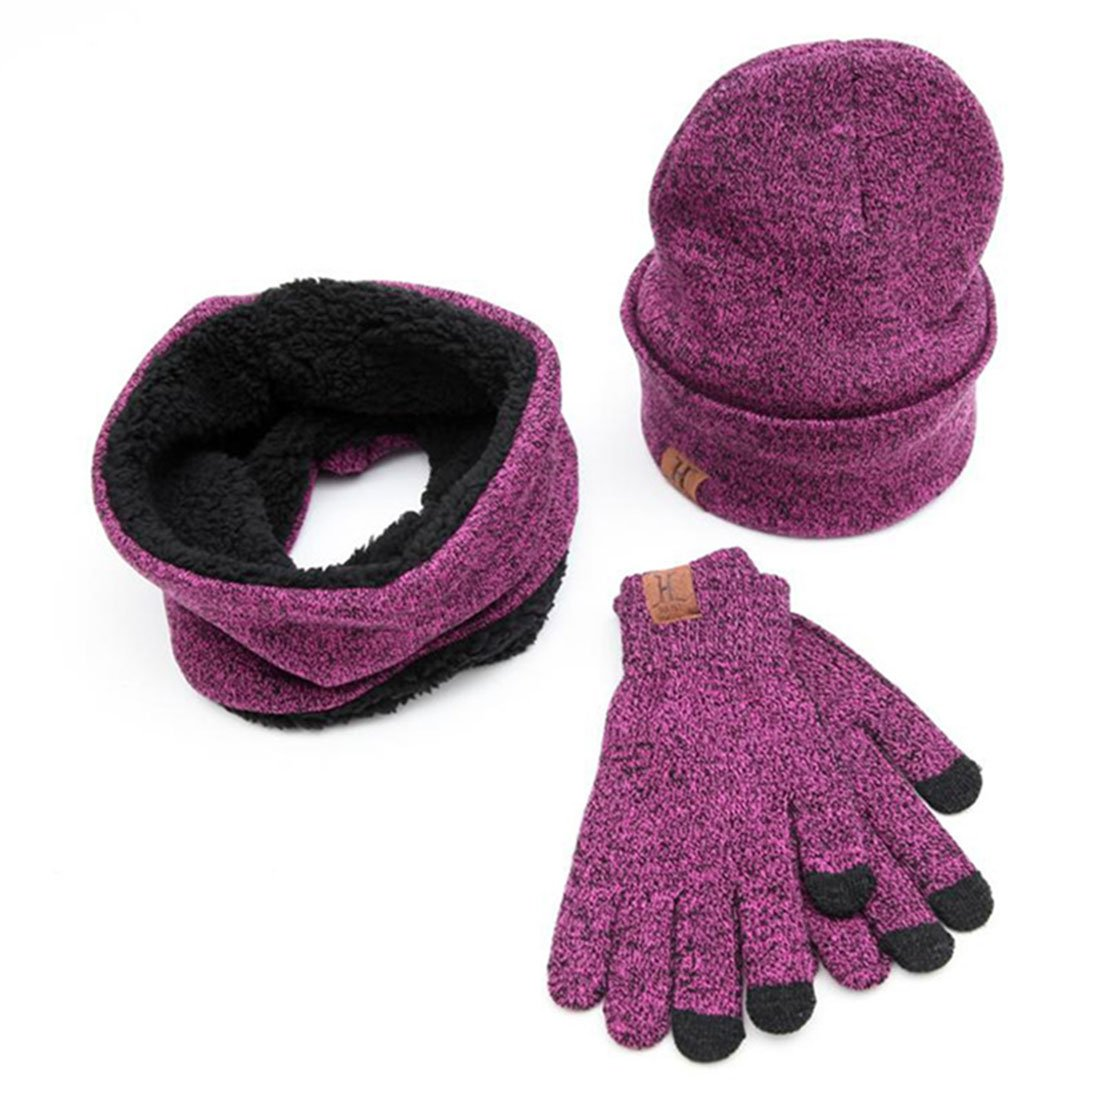 Pinji 3PCS Winter Knitted Warm Beanie Hat Scarf Touch Screen Gloves for Men and Women Rose Red